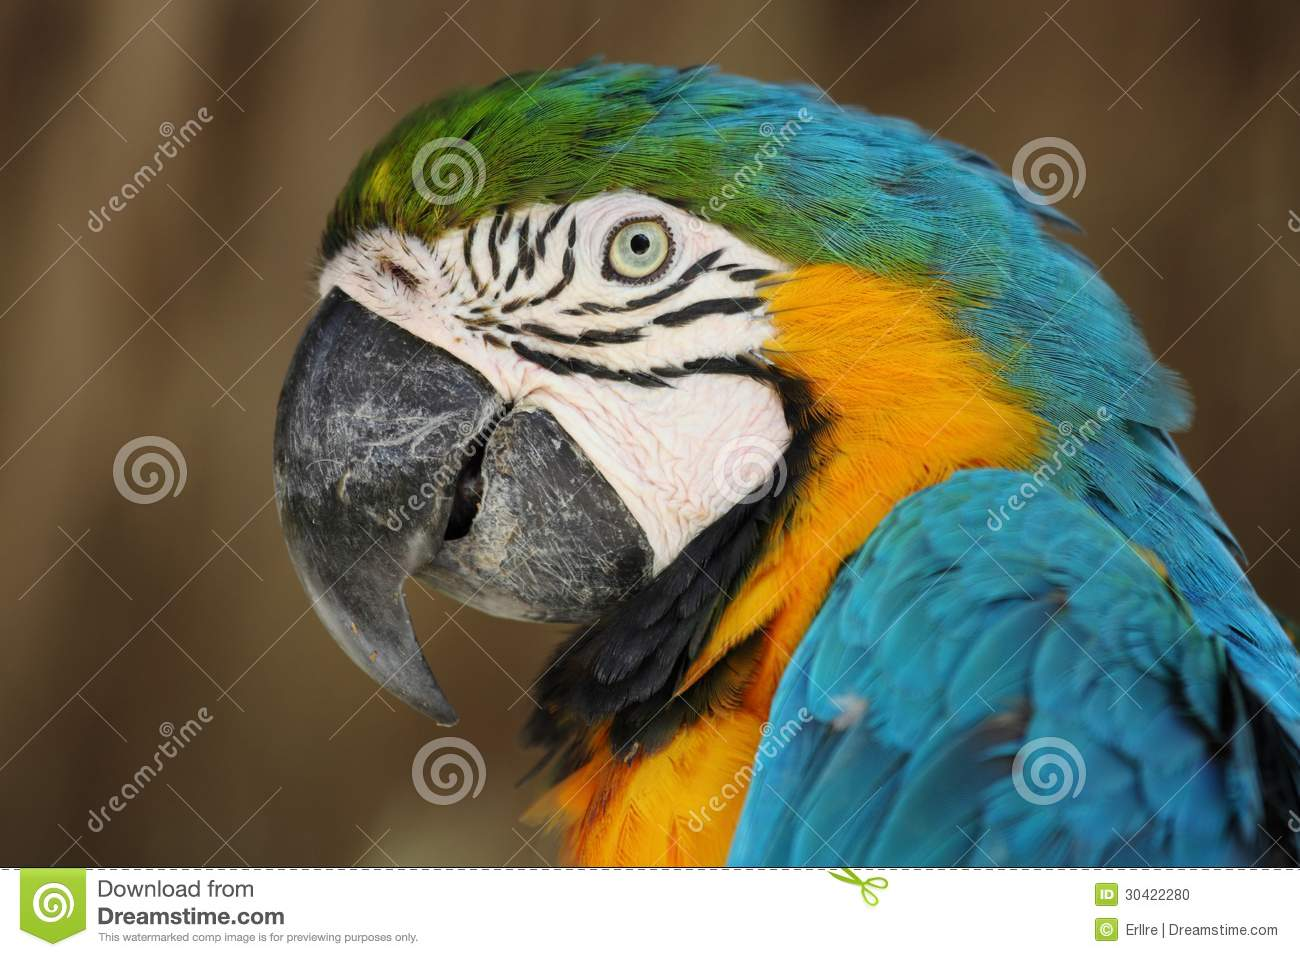 Tropical parrot stock photo  Image of asia, beaks, mate